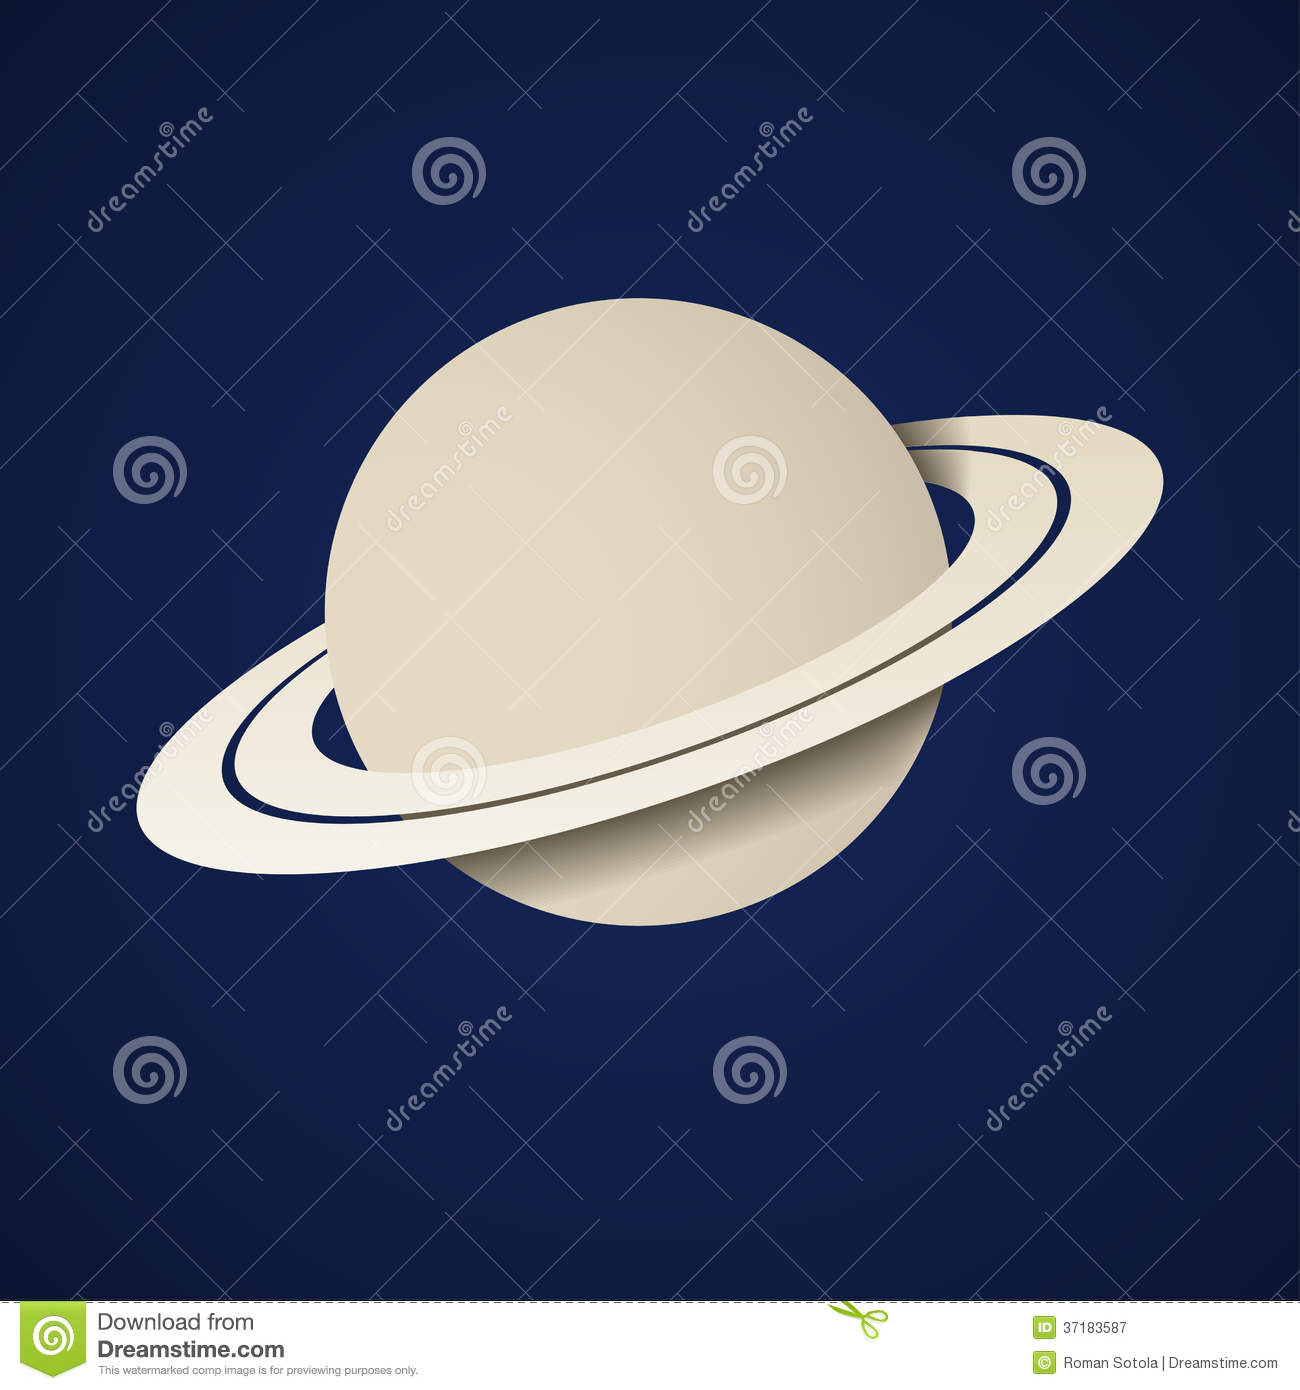 essay planet saturn Essays on planet neptune we have found 500 essays on planet neptune astronomy essay 3 pages (750 words) not dowloaded yet planet saturn 1 pages (250 words.